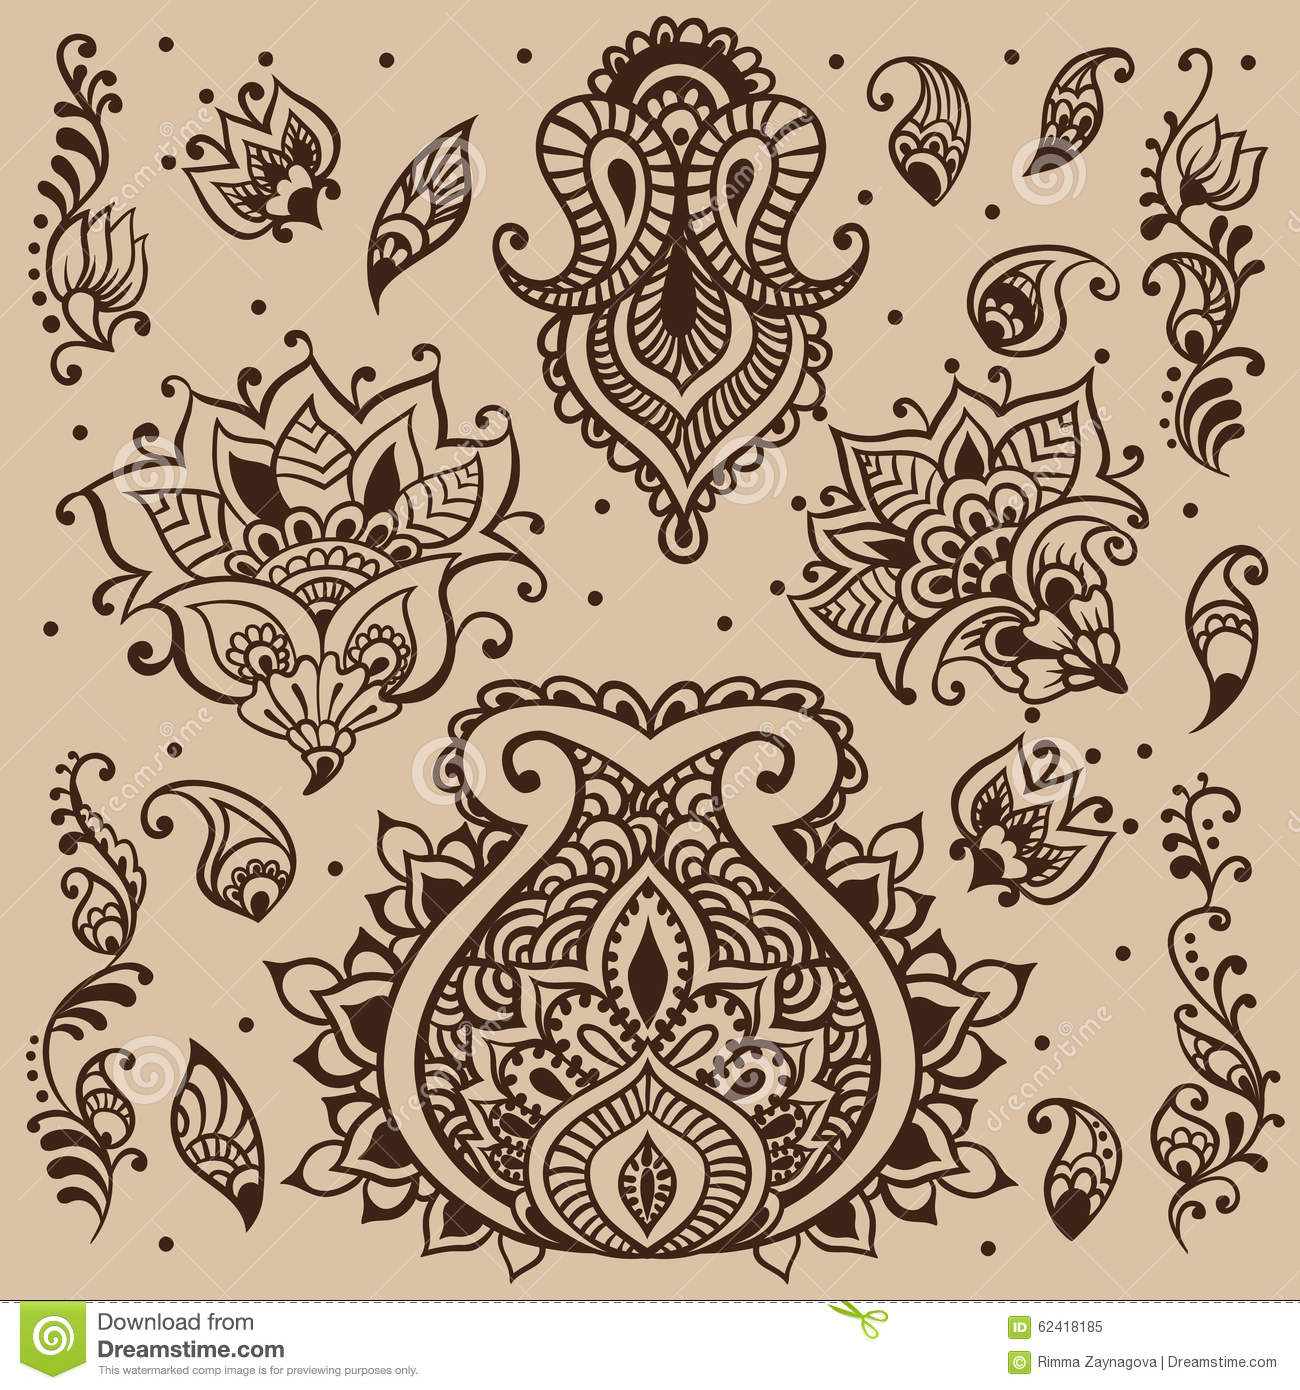 Henna Vector Design Stock Vector Illustration Of Arabic 62418185